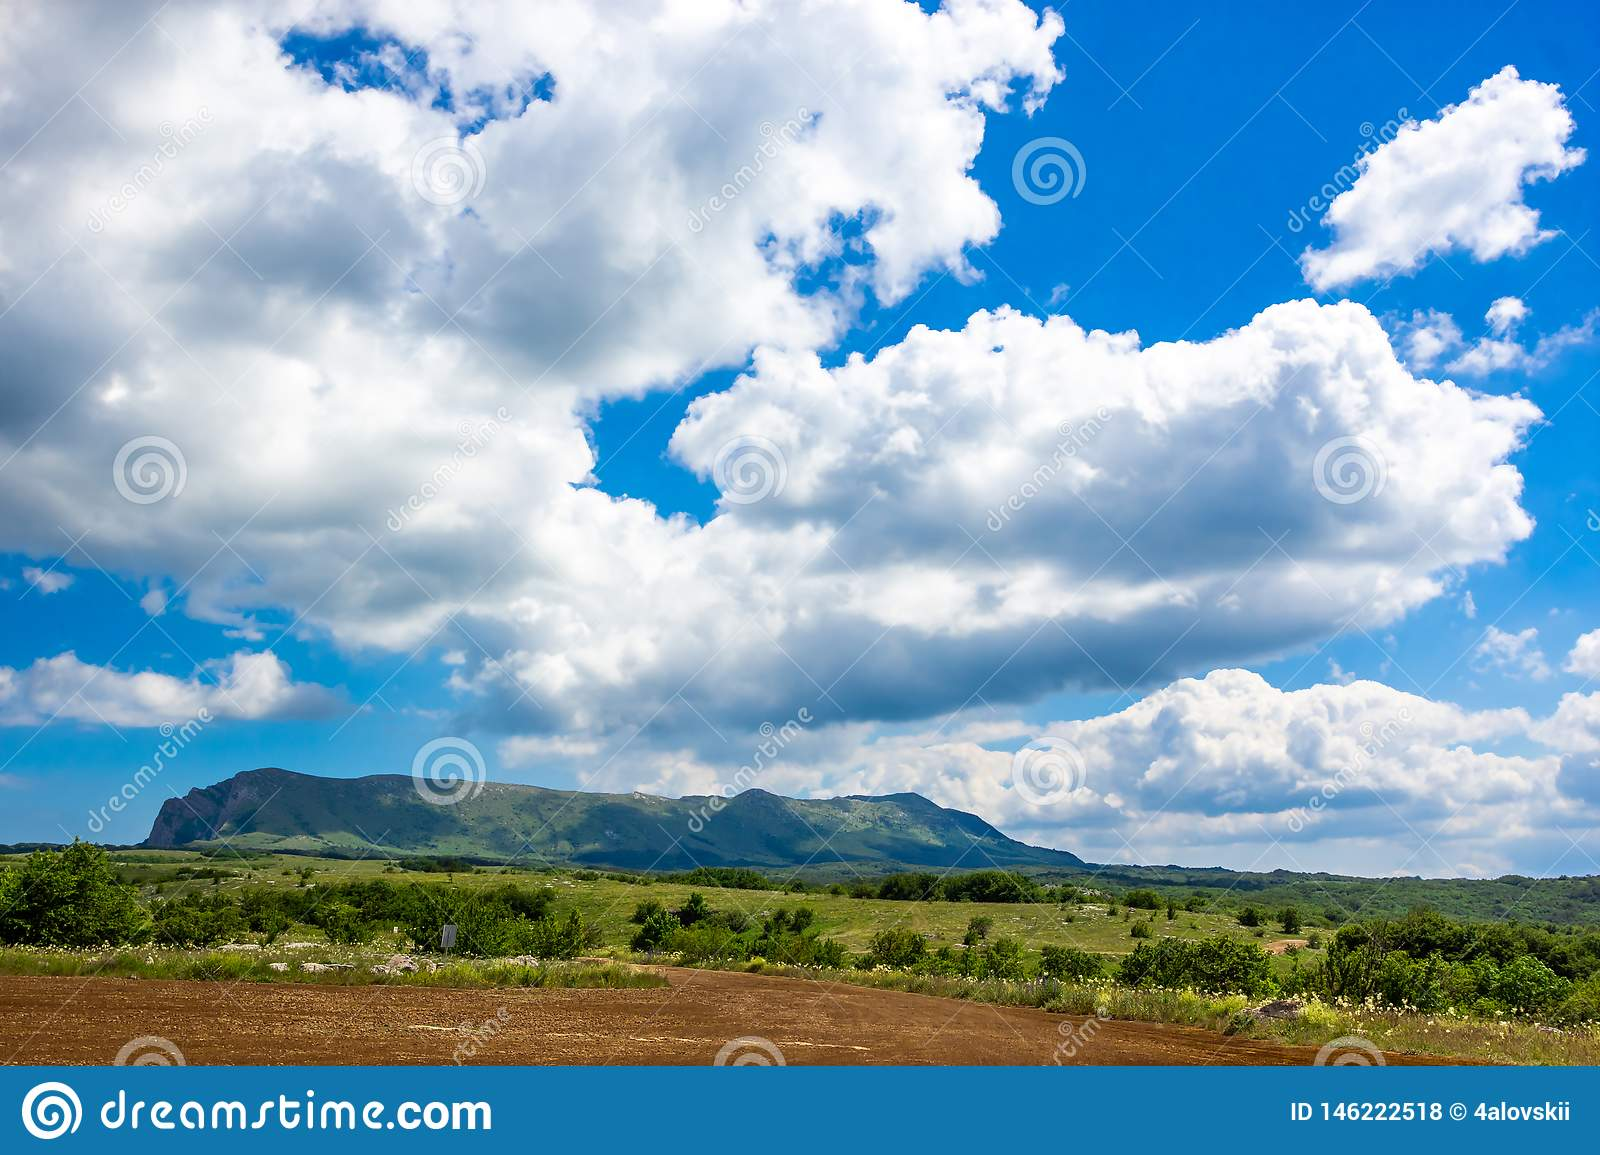 Colorful summer landscape in the mountains, under a blue sky with white clouds